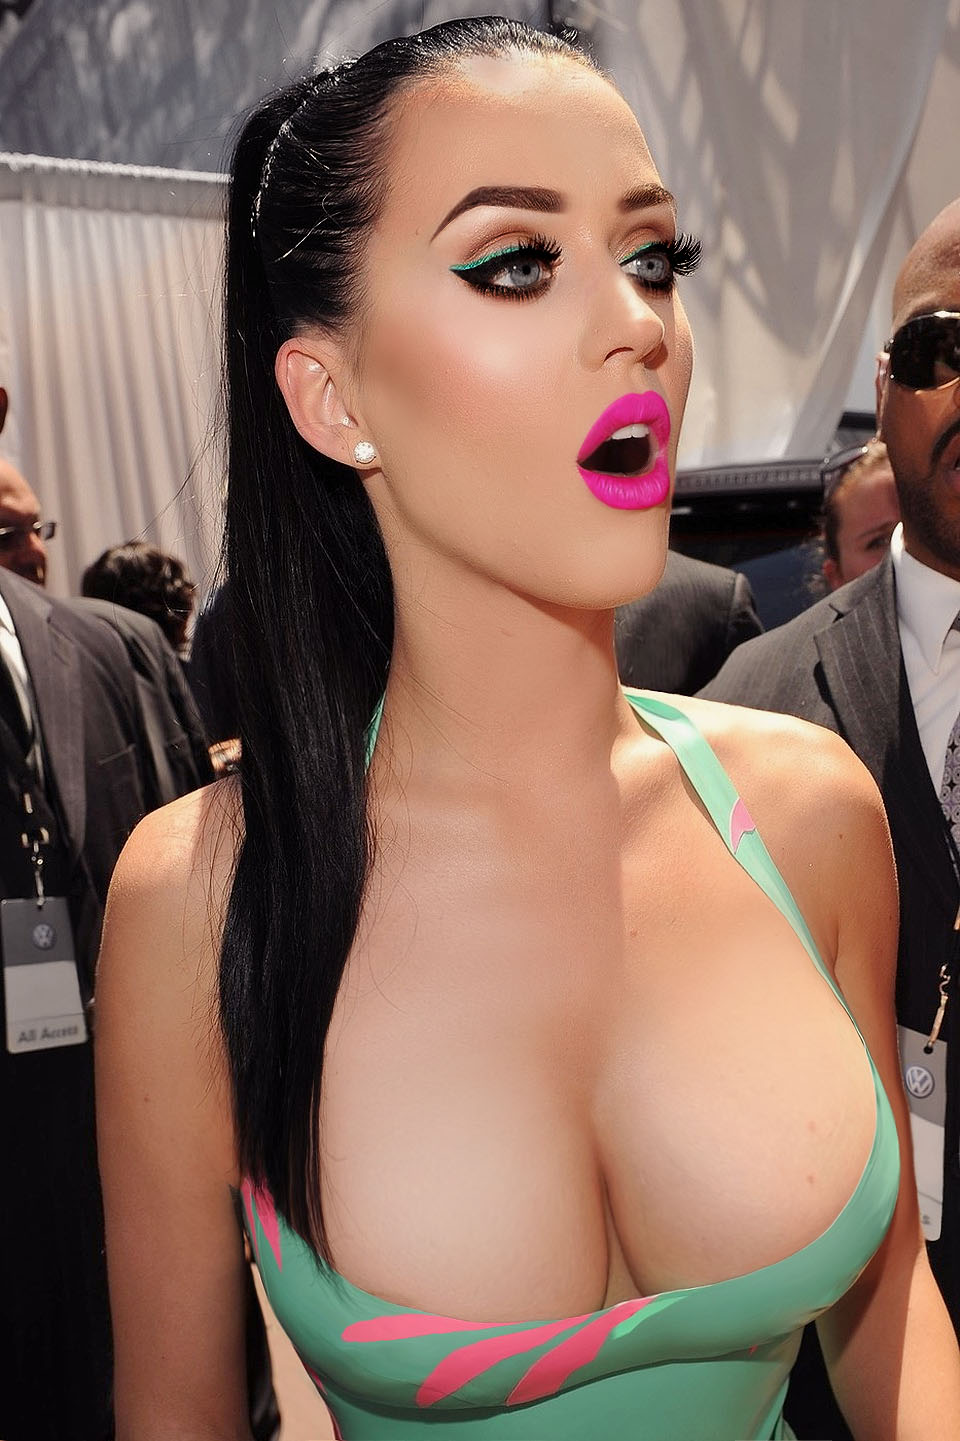 fokken mooi boobs katy perry